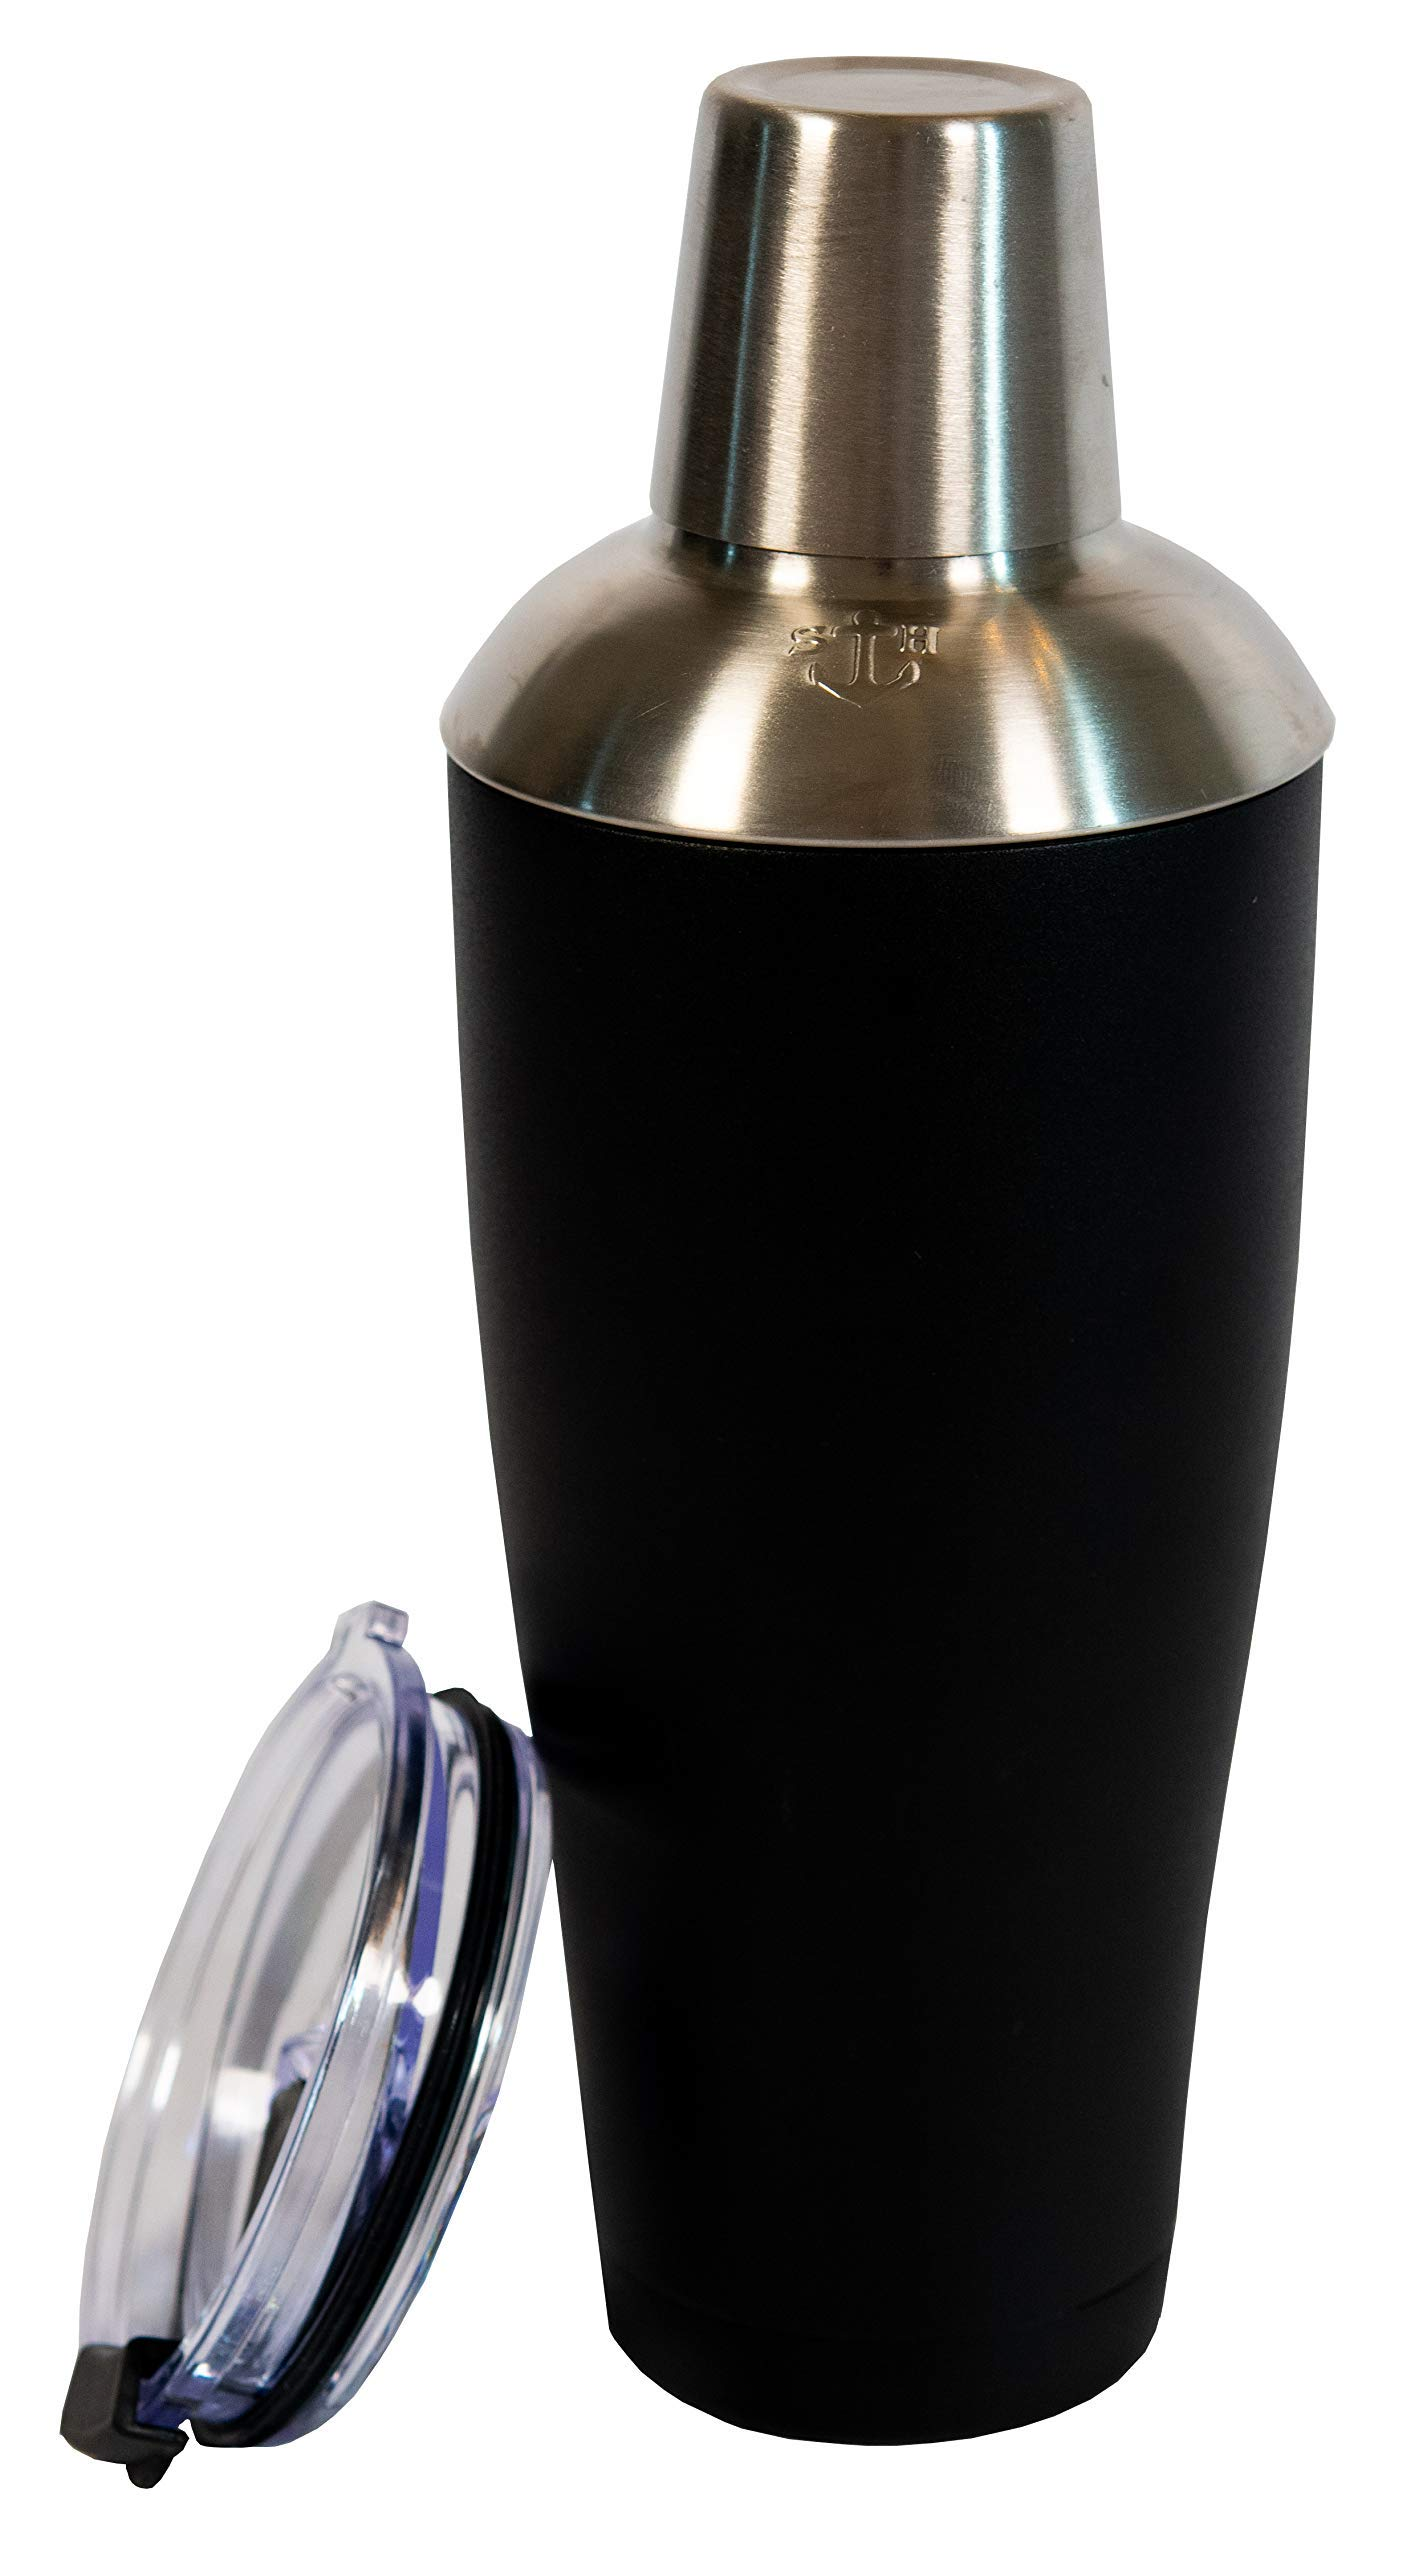 Stock Harbor Stainless Steel 30 Ounce (887 Milliliter) Double Wall Cocktail Shaker Vacuum Insulated Tumbler and Shaker Top; Powder Coated Black by S H STOCK HARBOR